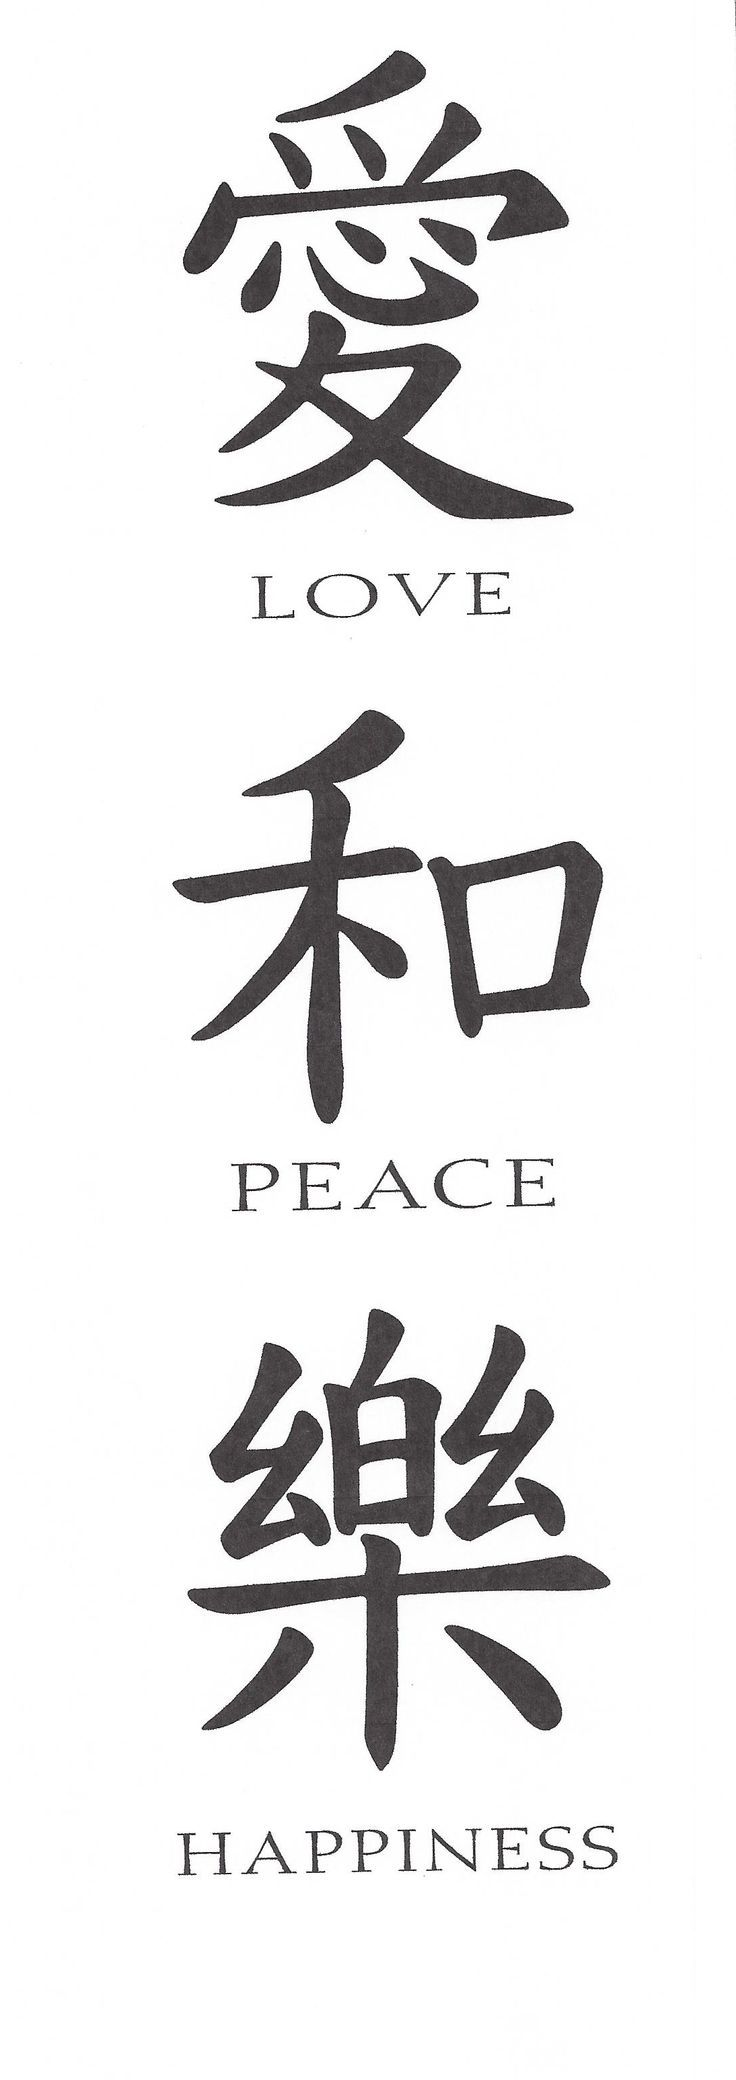 Drawn peace sign japan Japanese love Japanese peace happiness